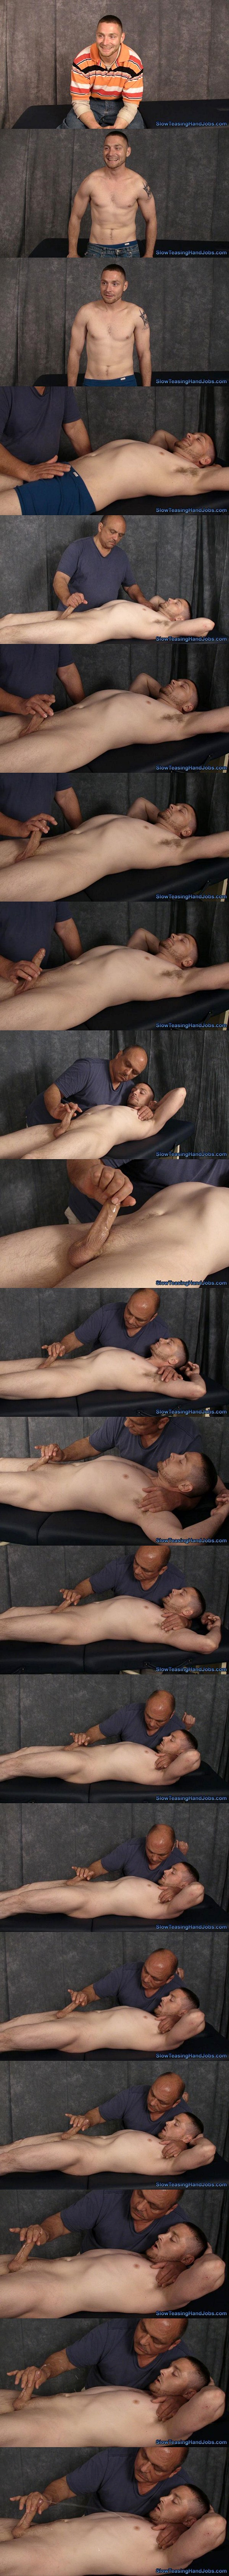 Hot straight muscle jock Kevin gets slowly stroked and edged by master Rich until he gets jerked off in Unemployed Painter Kevin Edged at Slowteasinghandjobs 01